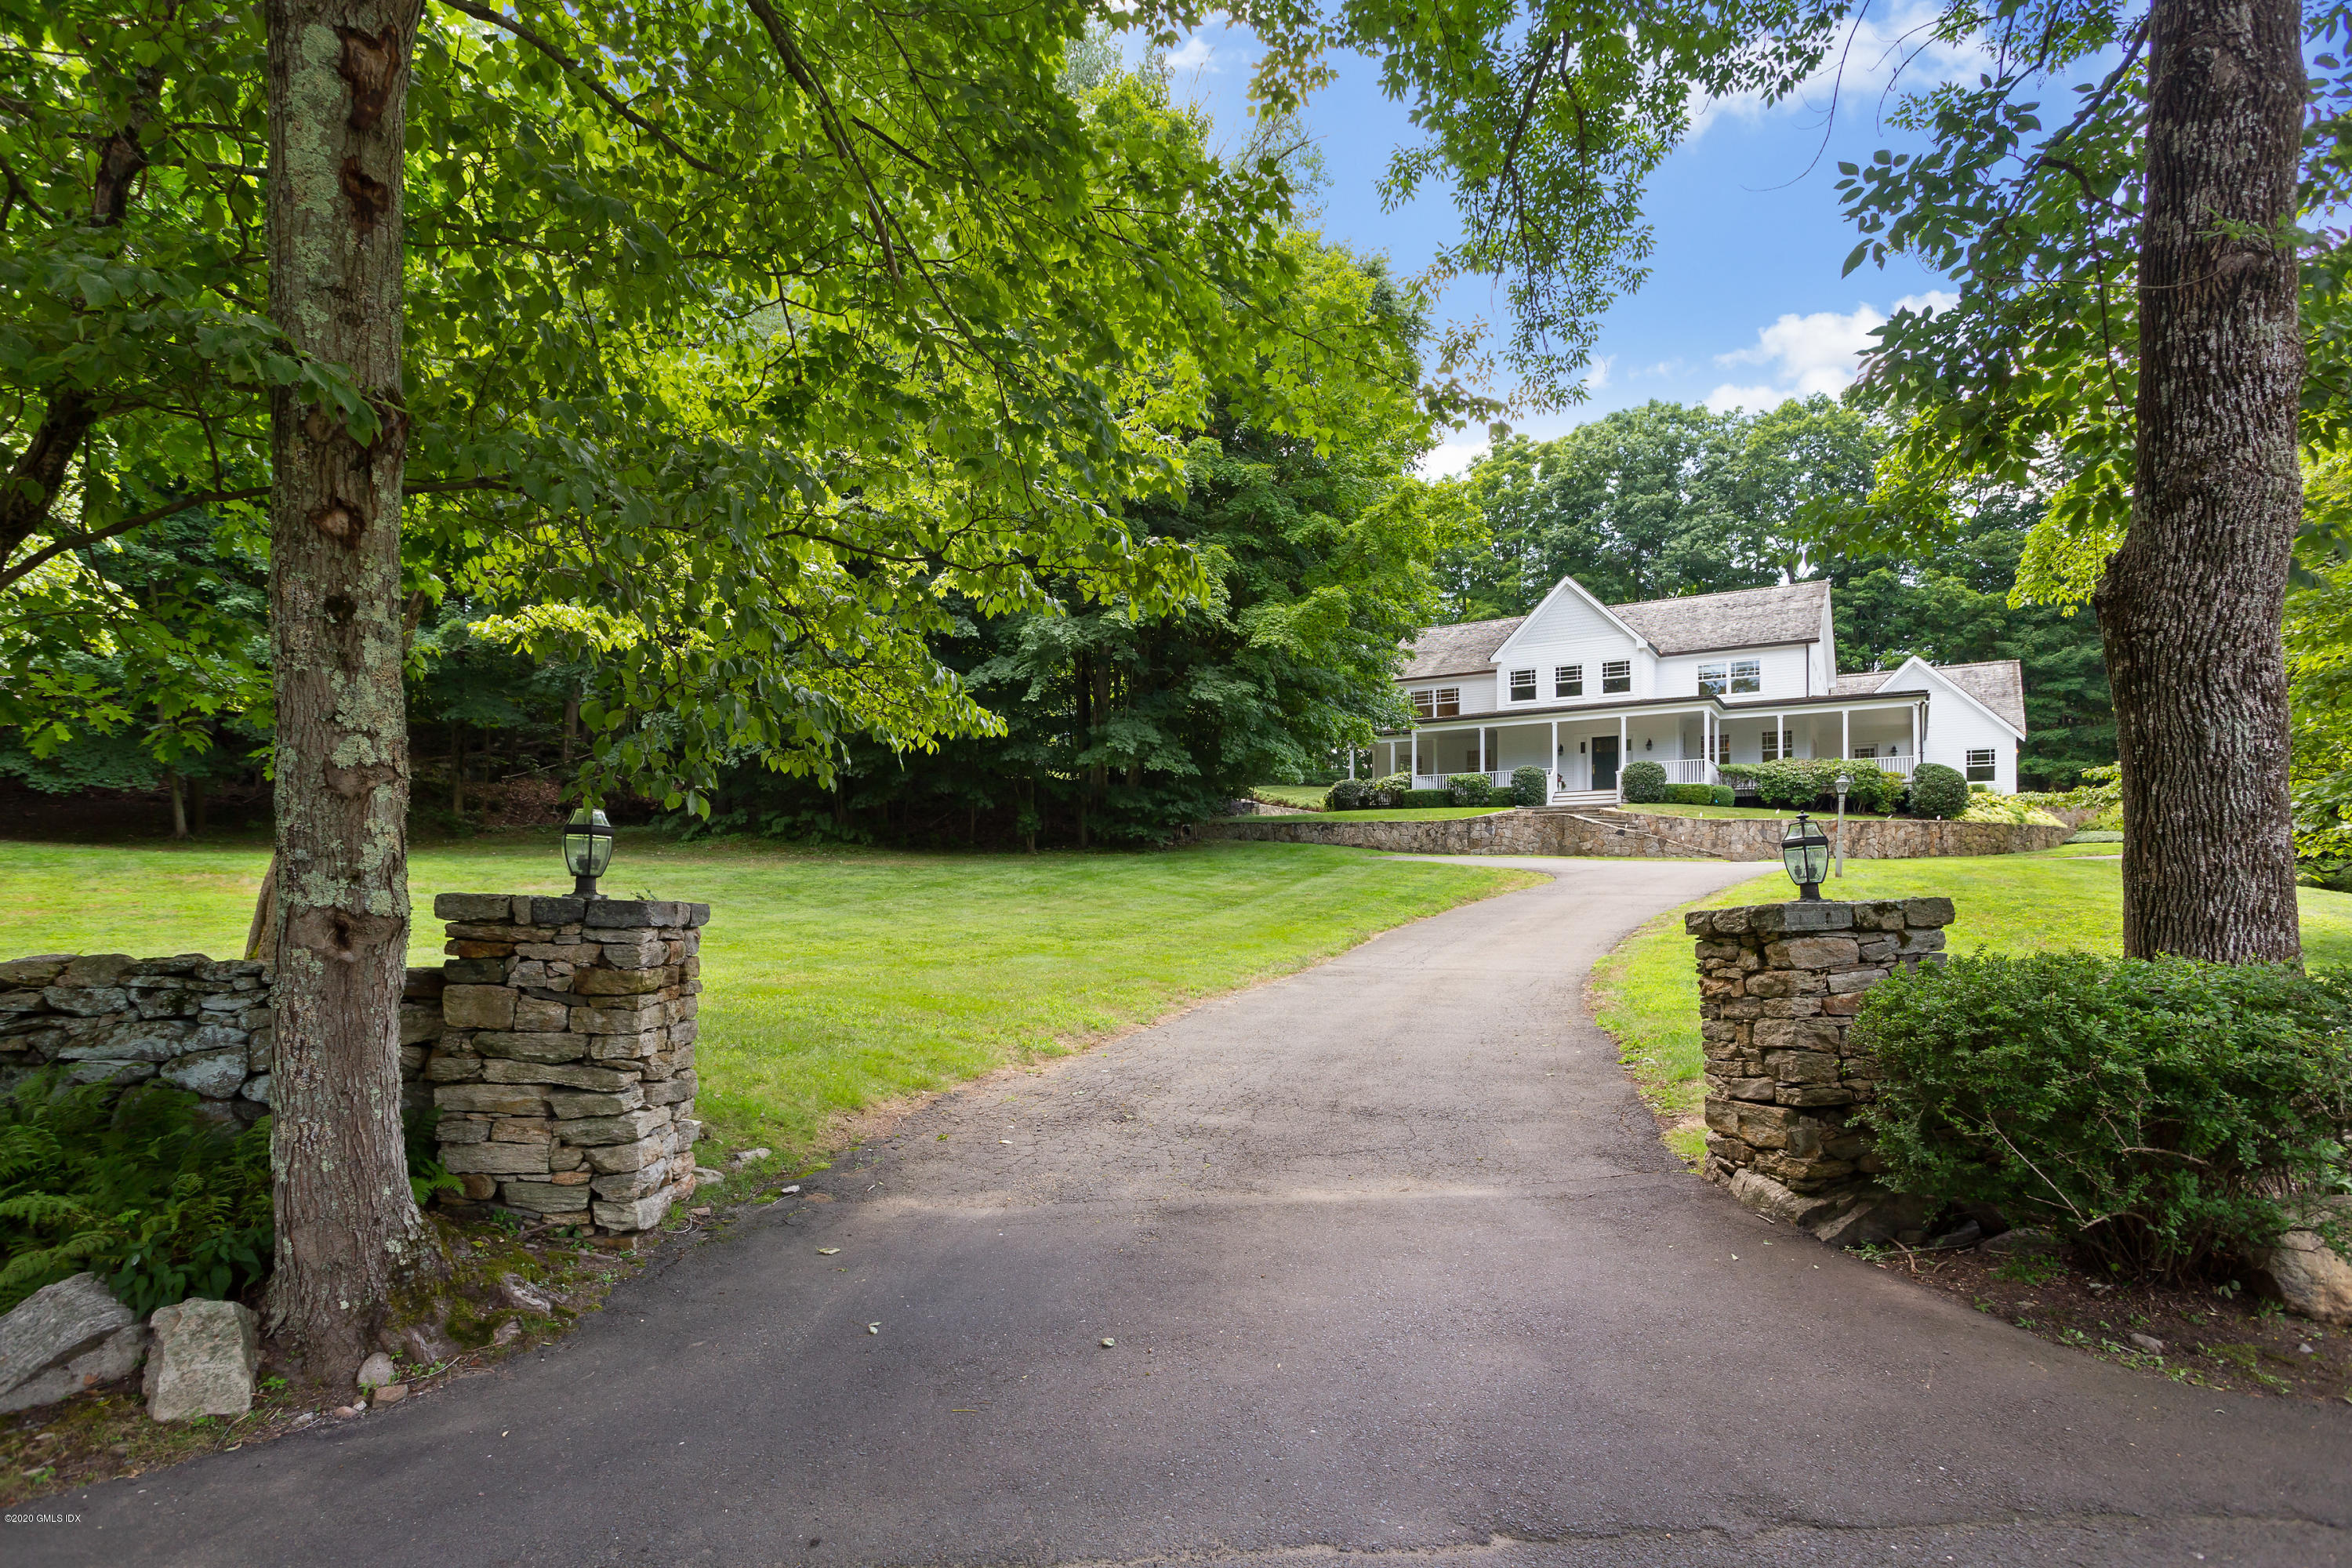 350 Riversville Road, Greenwich, Connecticut 06831, 4 Bedrooms Bedrooms, ,4 BathroomsBathrooms,Single family,For sale,Riversville,110557